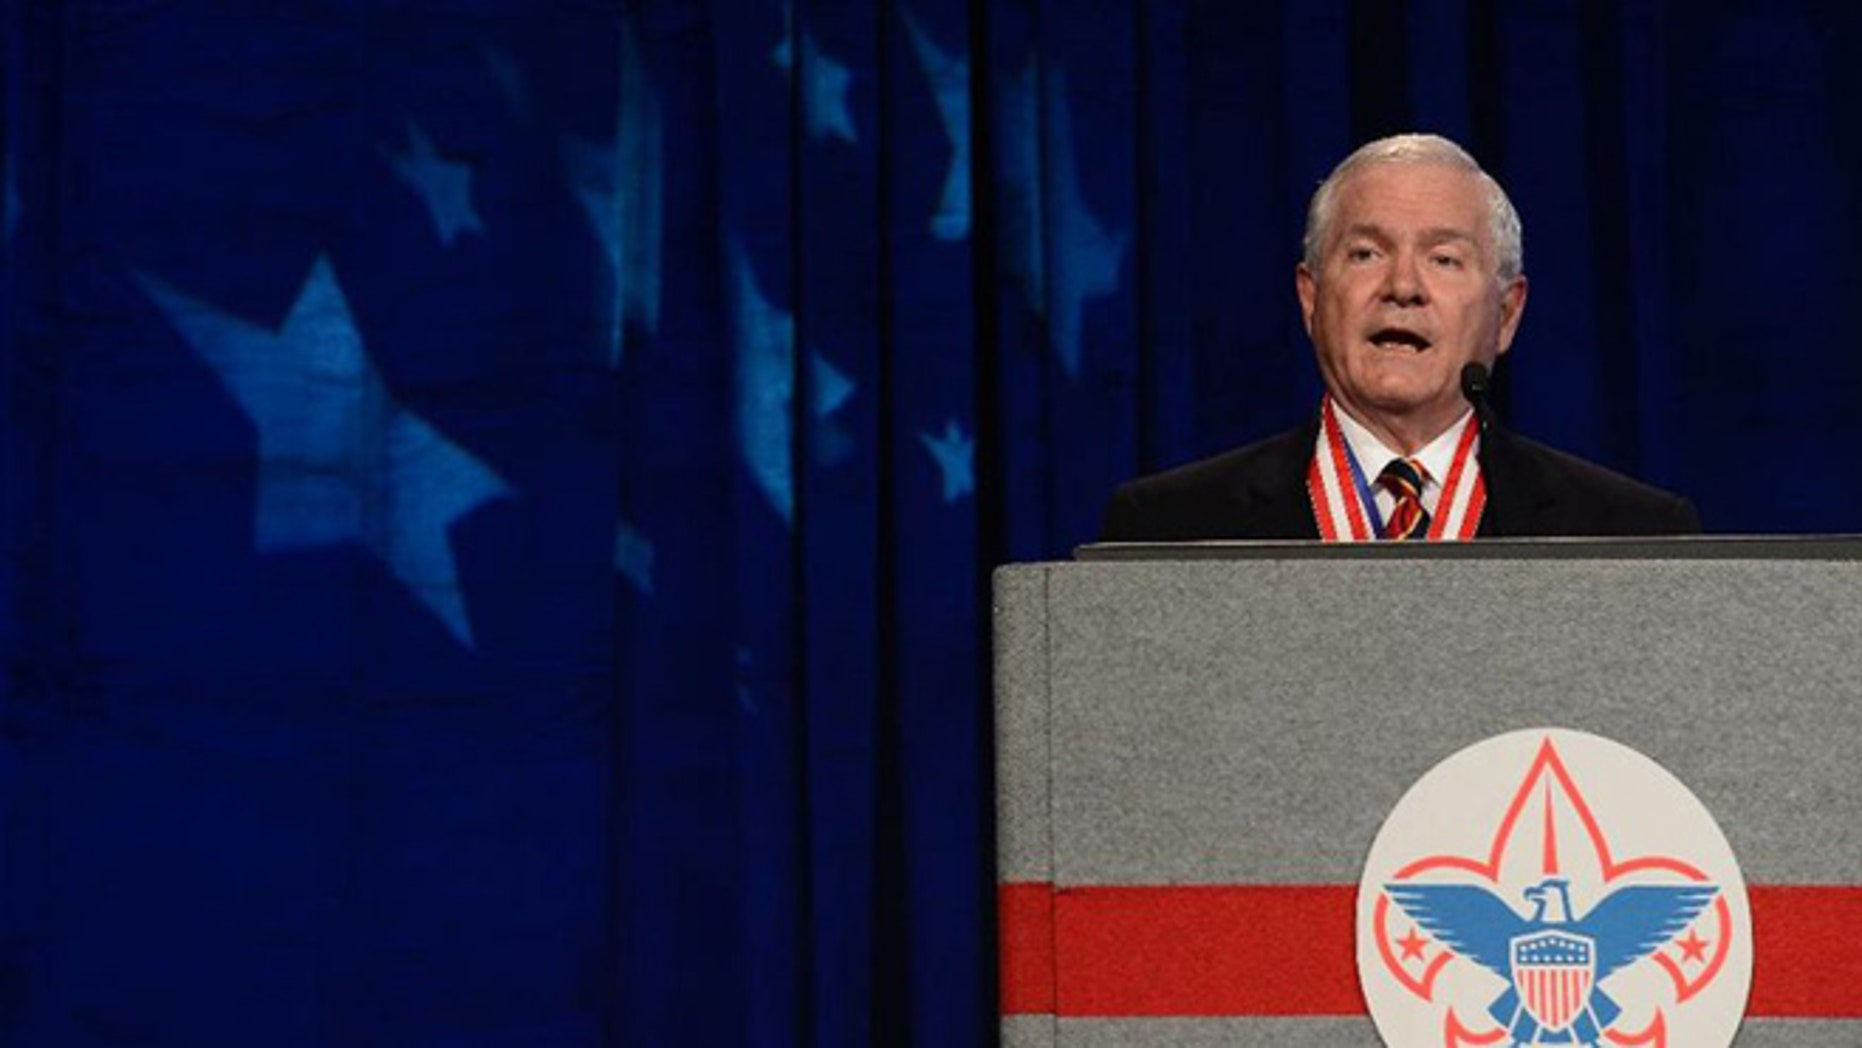 In this Friday, May 23, 2014 file photo, former Defense Secretary Robert Gates addresses the Boy Scouts of America's annual meeting in Nashville, Tenn., after being selected as the organization's new president.